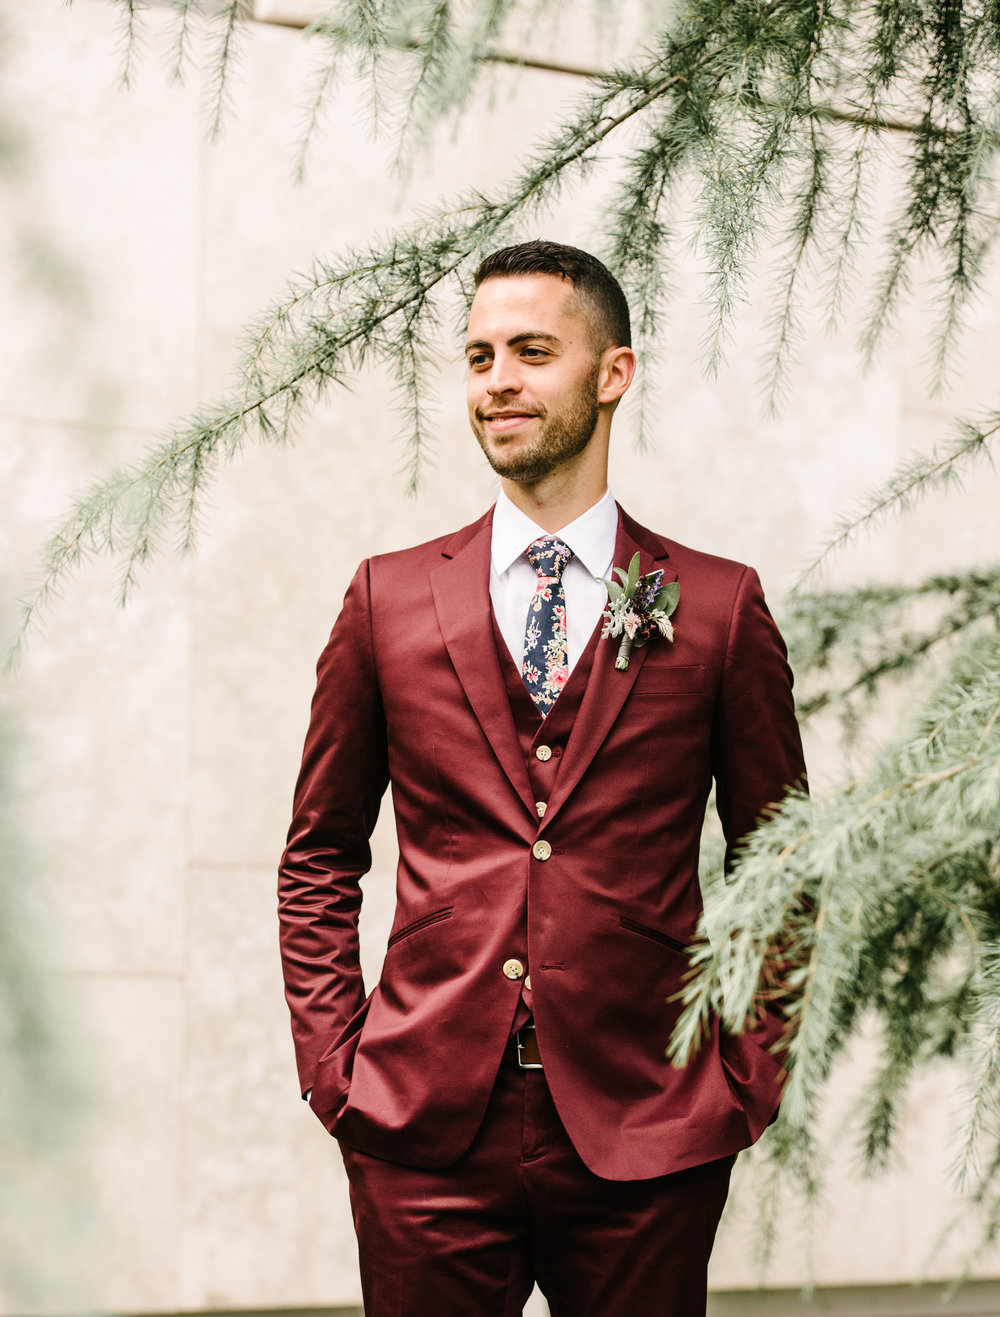 Groom style at Maas Building in Indochino suit | Philadelphia Wedding Planner Heart & Dash | AGP Collective | Maas Building Wedding